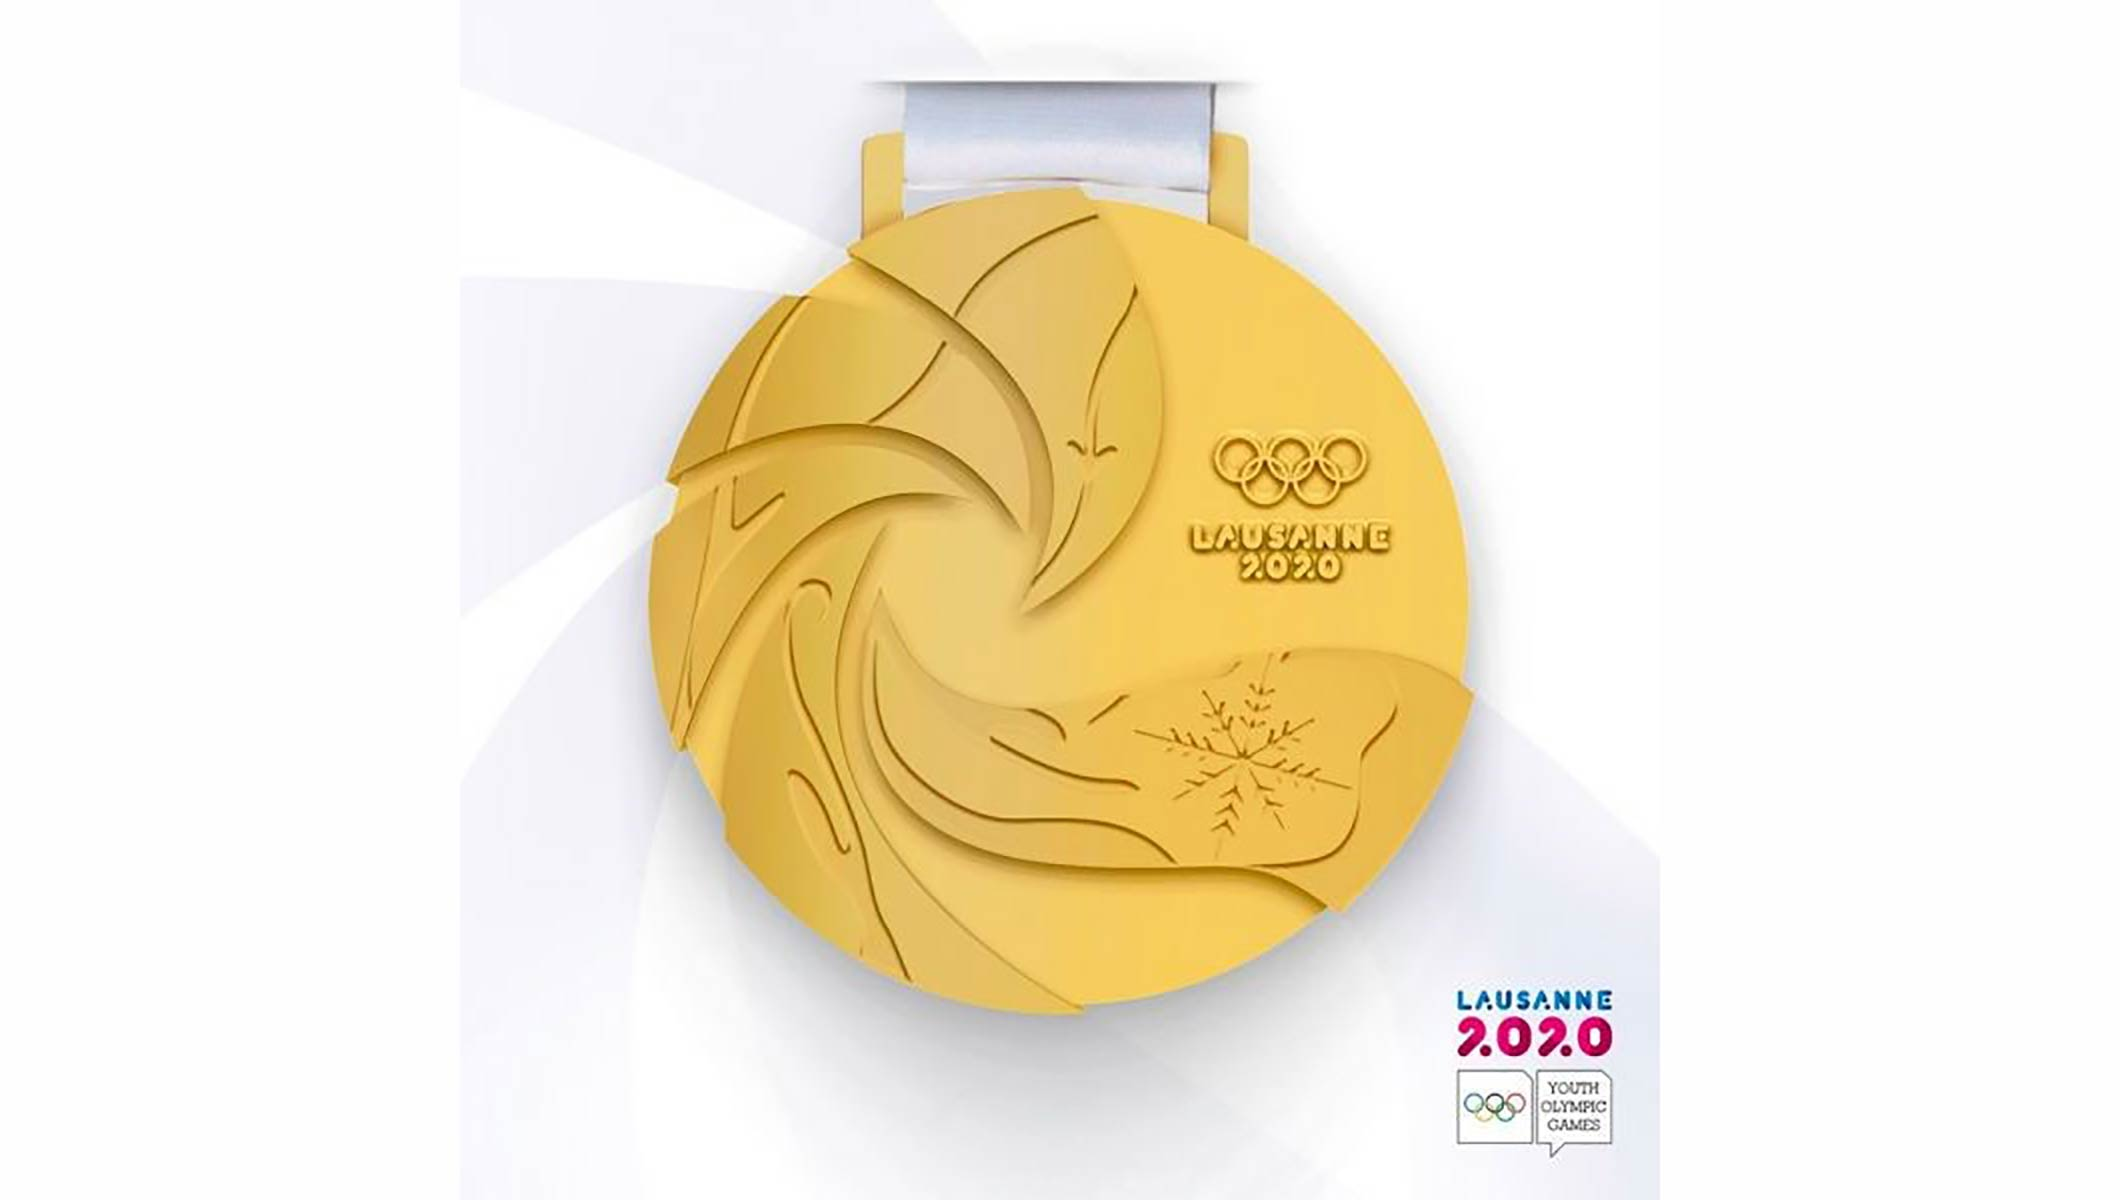 Zakea's medal design reaches the top! - Olympic News